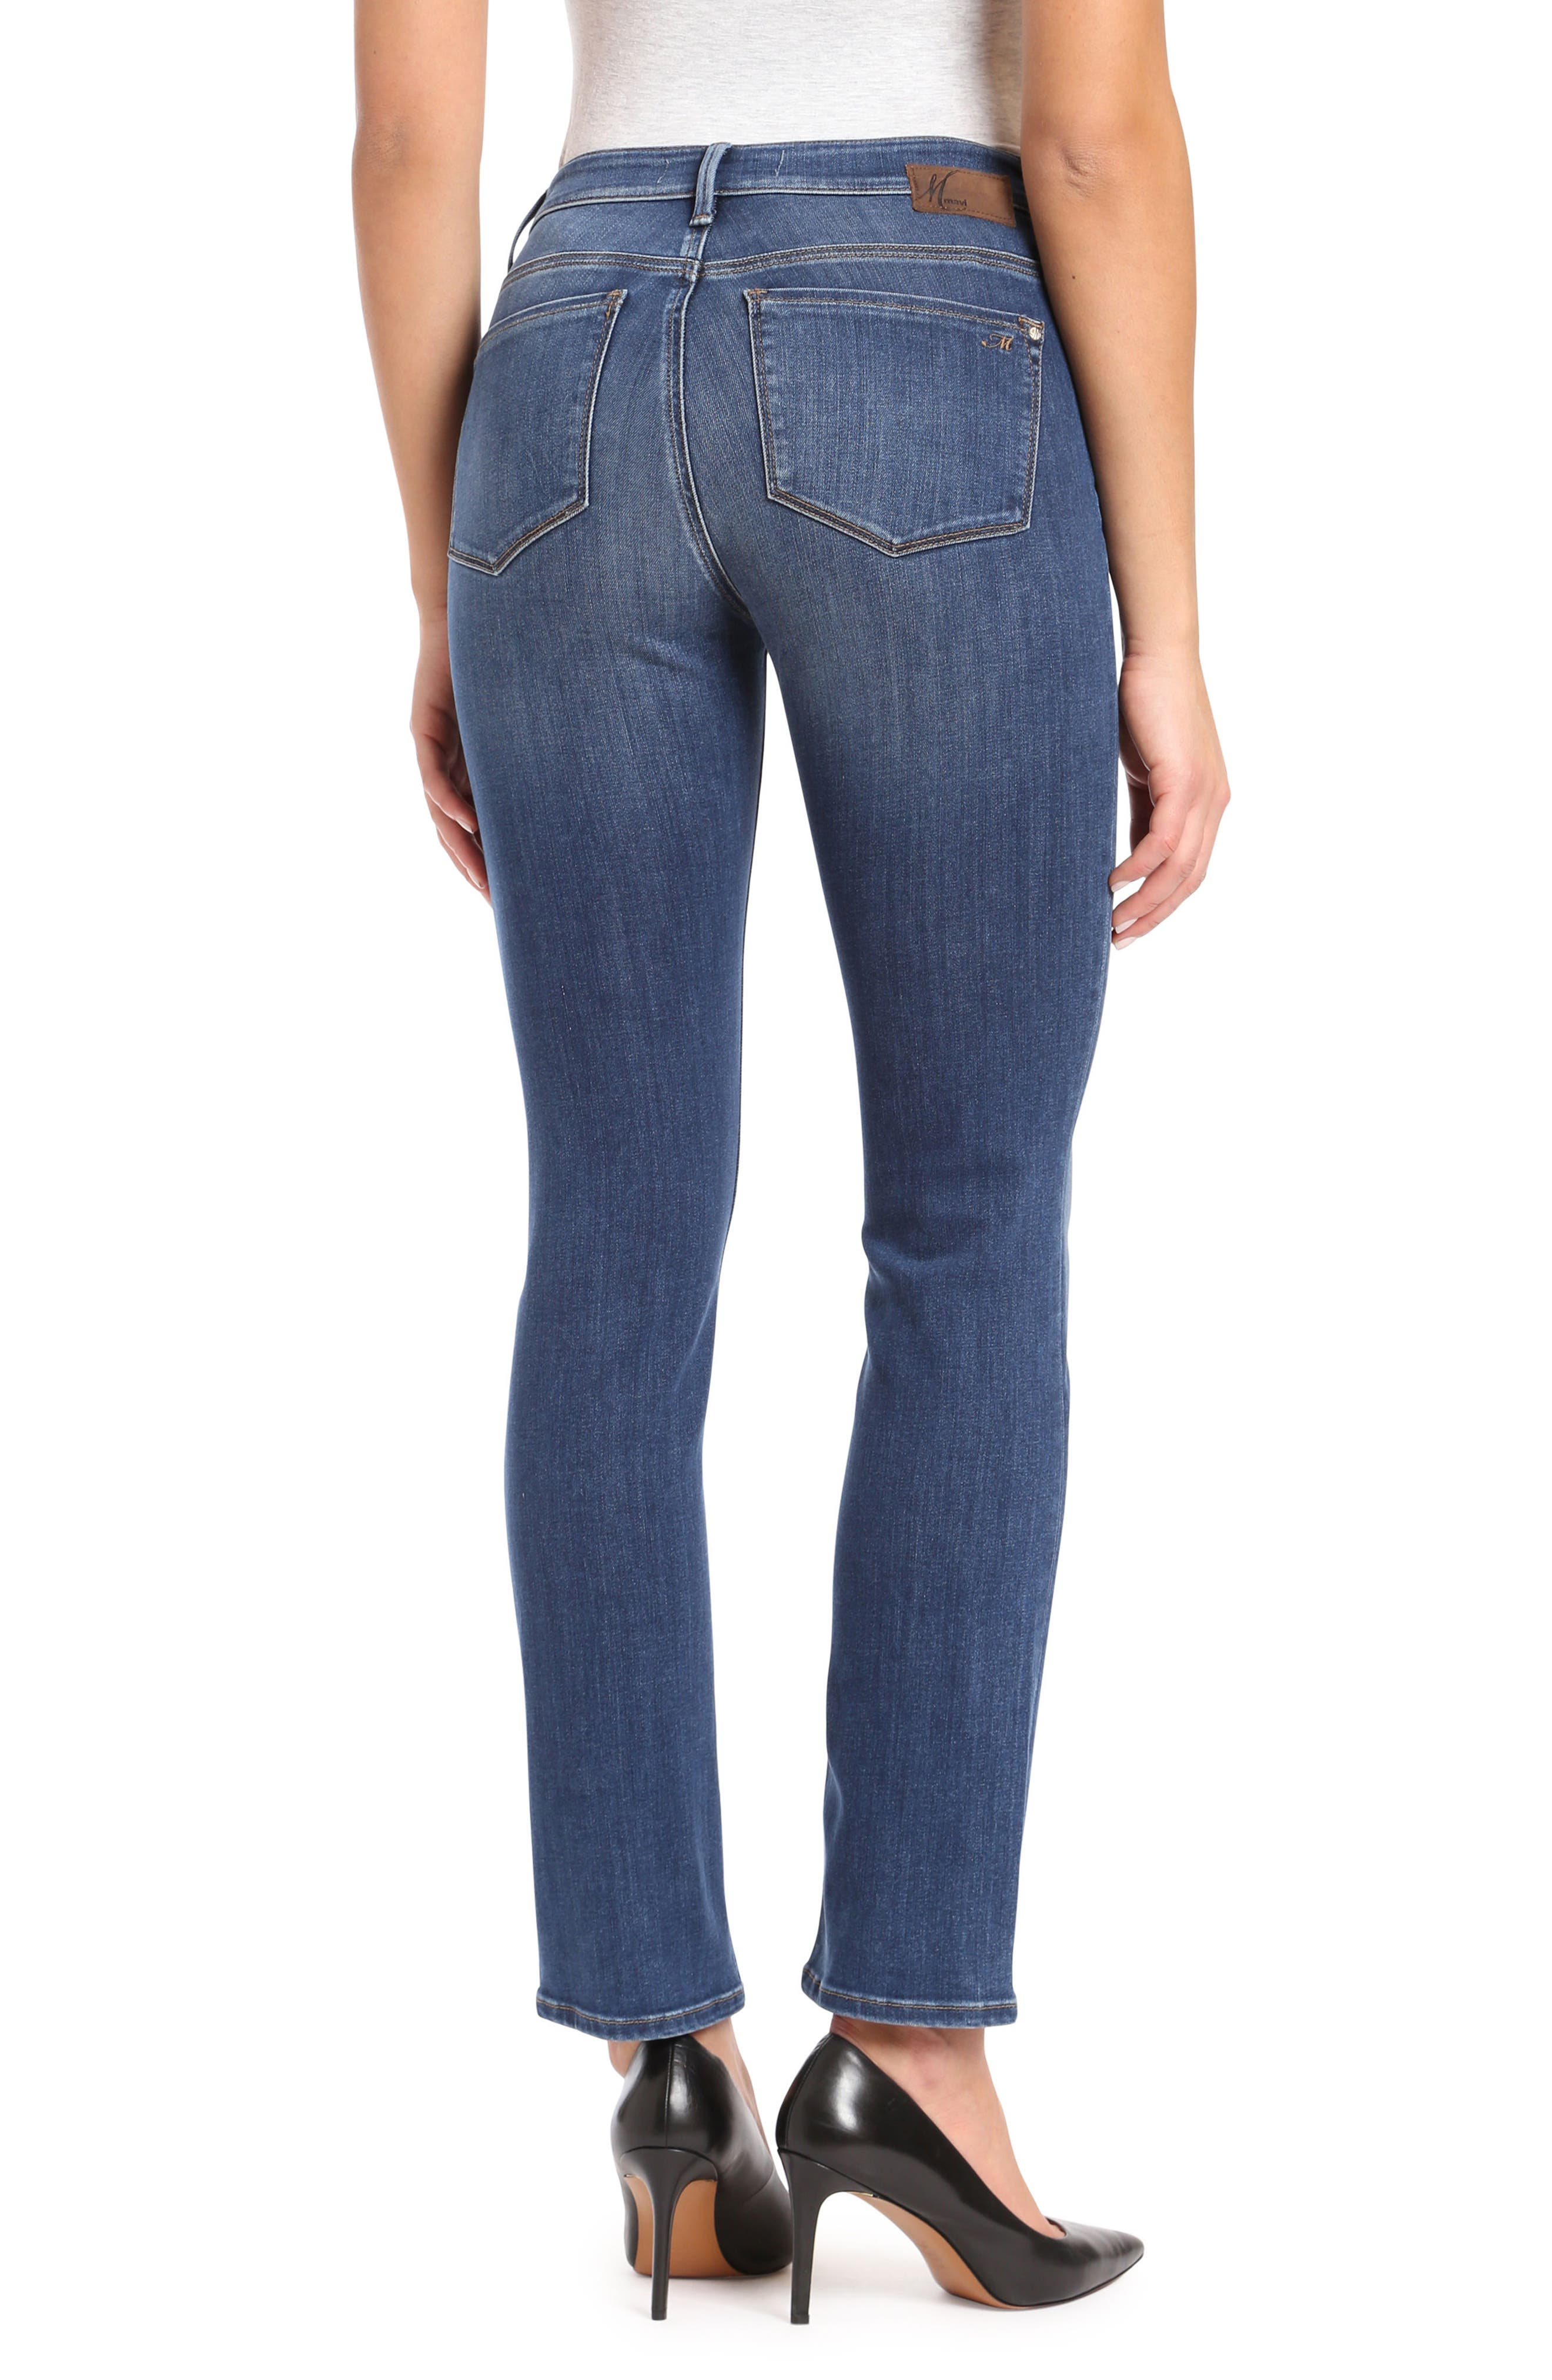 Kendra Straight Leg Jeans,                             Alternate thumbnail 2, color,                             INDIGO SUPER SOFT